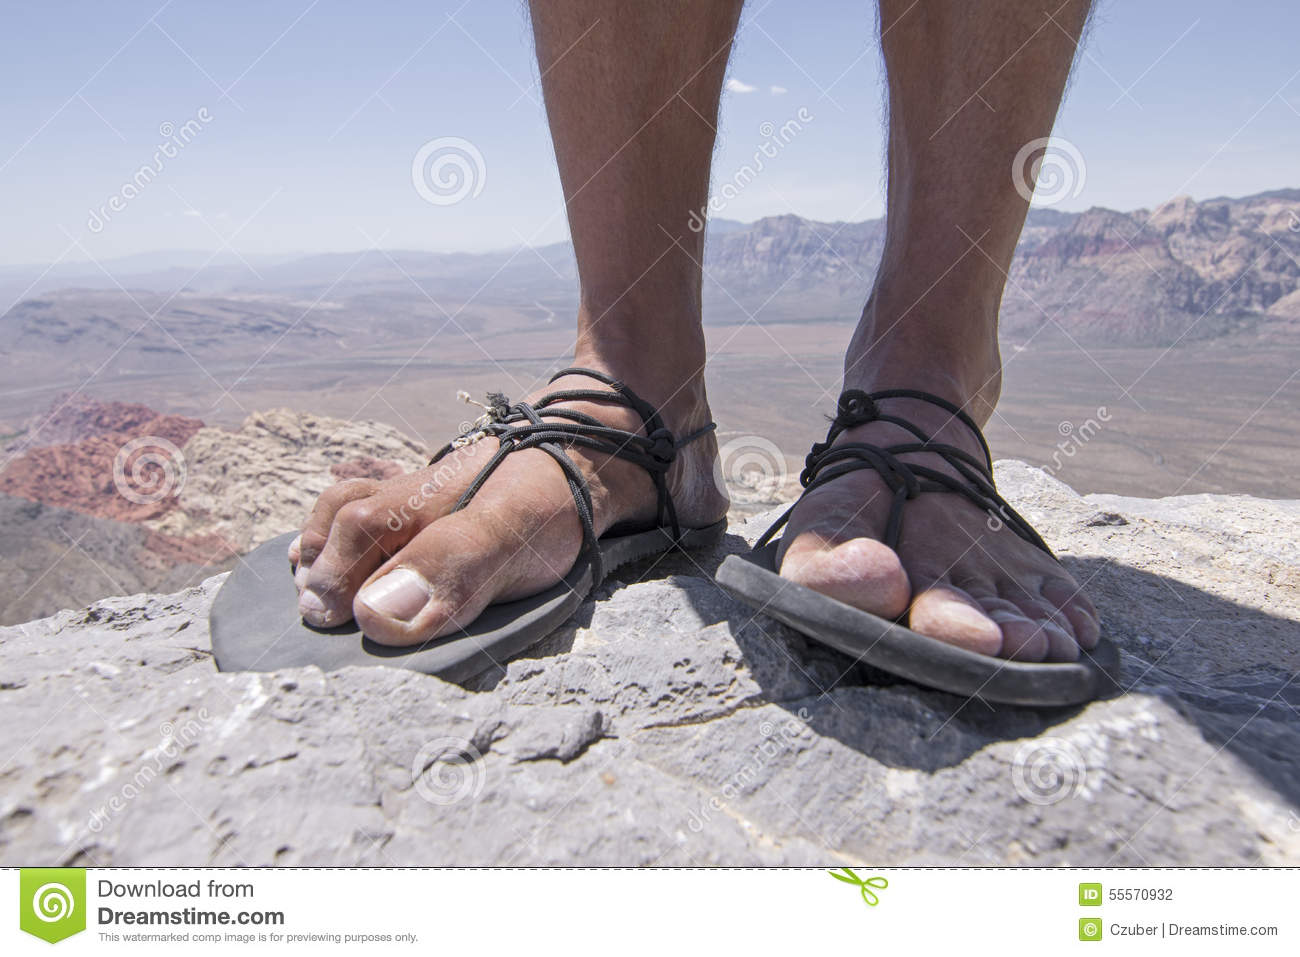 Rugged Feet In Primitive Sandals On Mountain Stock Photo - Image ...